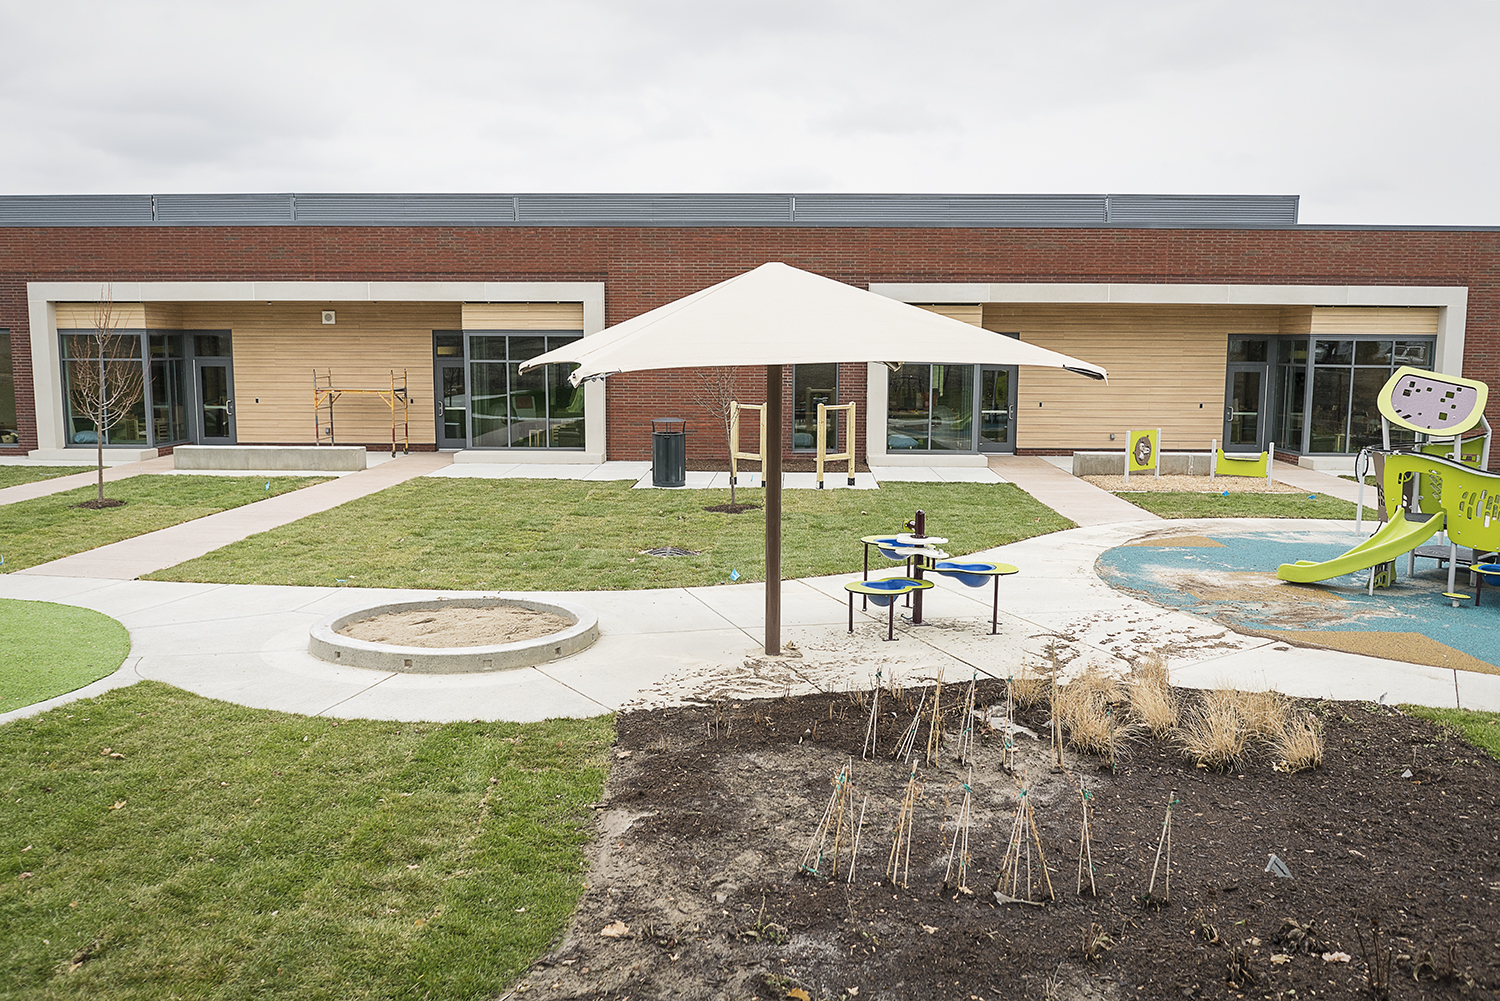 Flint, MI - Tuesday, November 21, 2017: New landscaping, activity centers and playscapes are being installed outside of the classrooms at the new Educare Center in Flint.